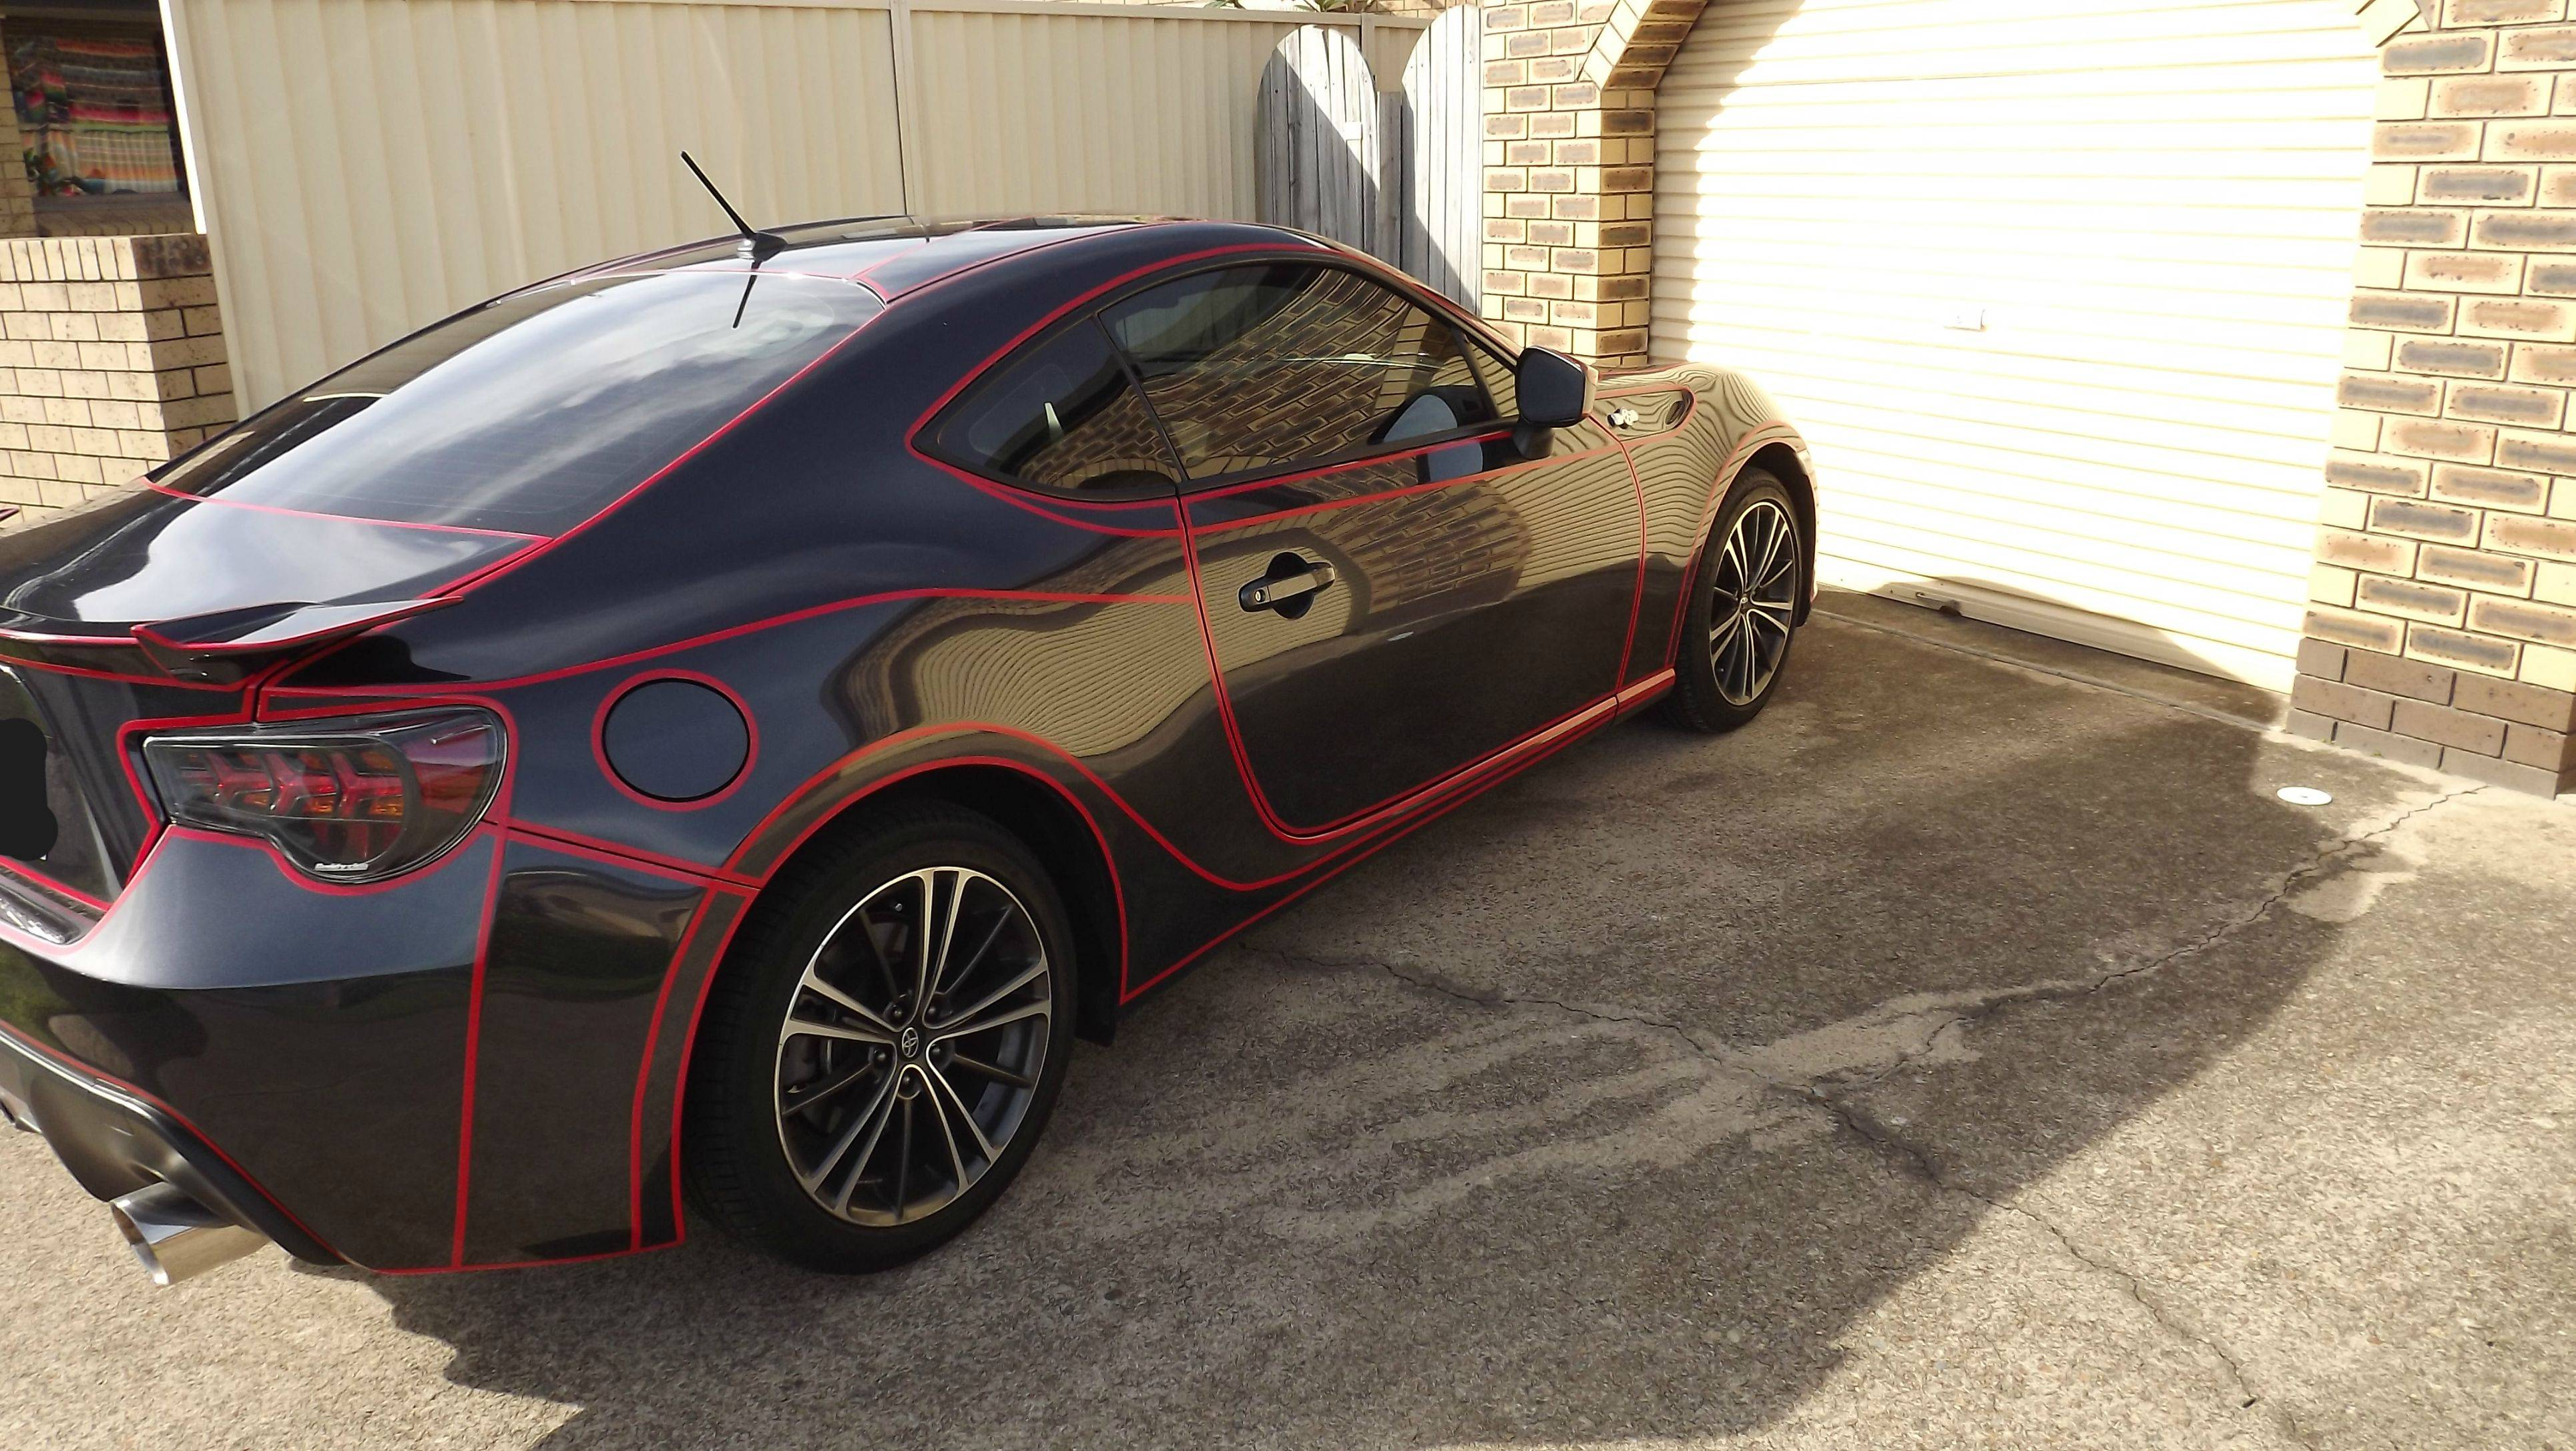 tron inspired car